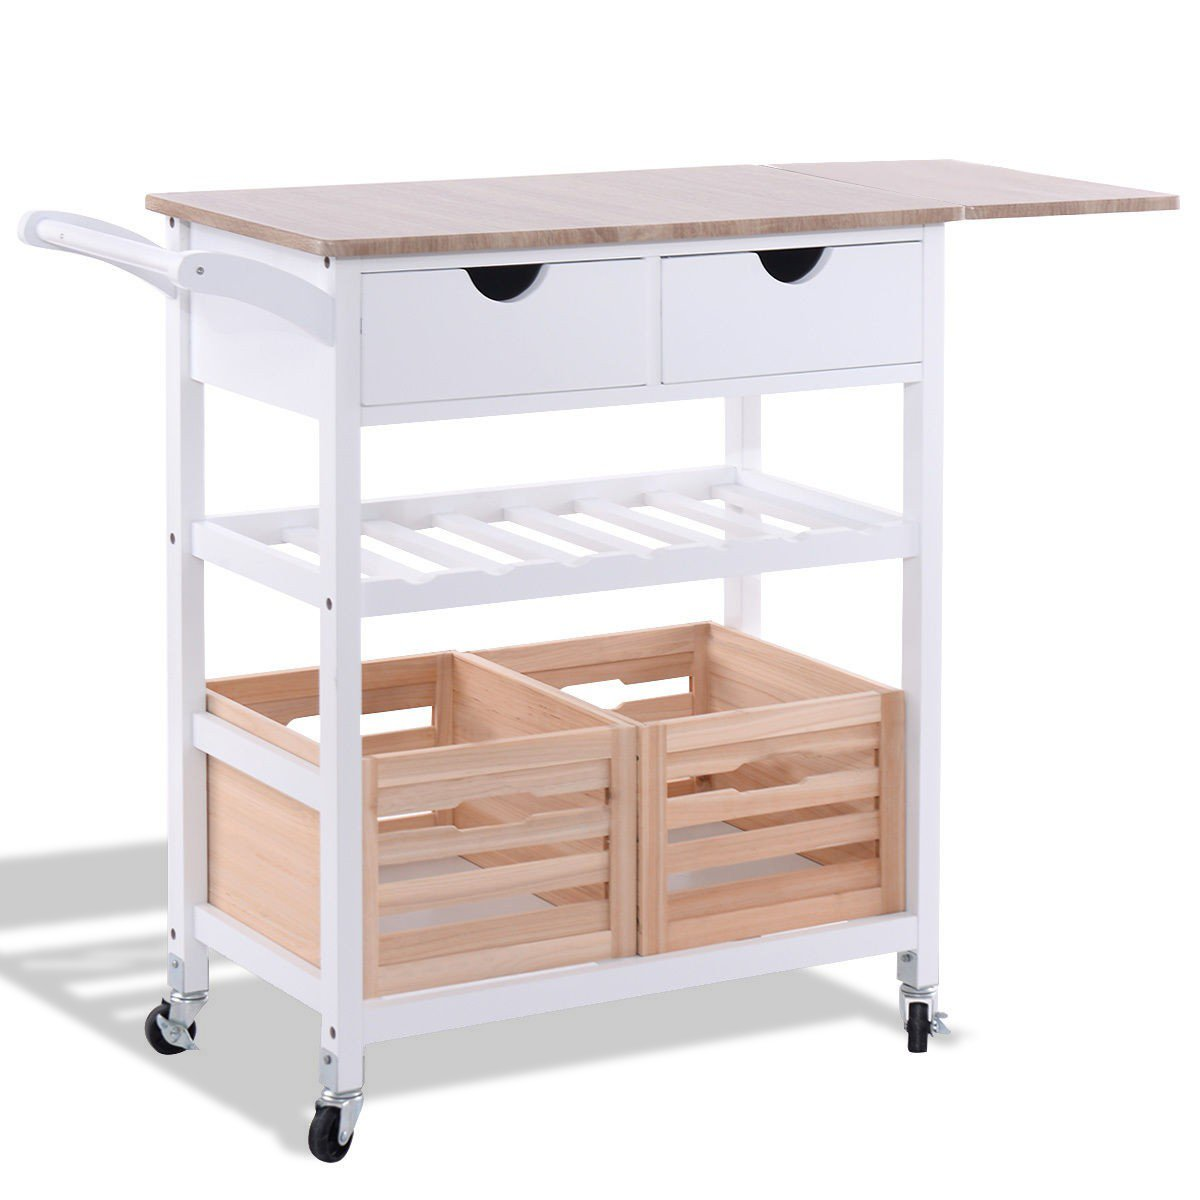 Rolling Kitchen Island Trolley Cart with Wine Shelf